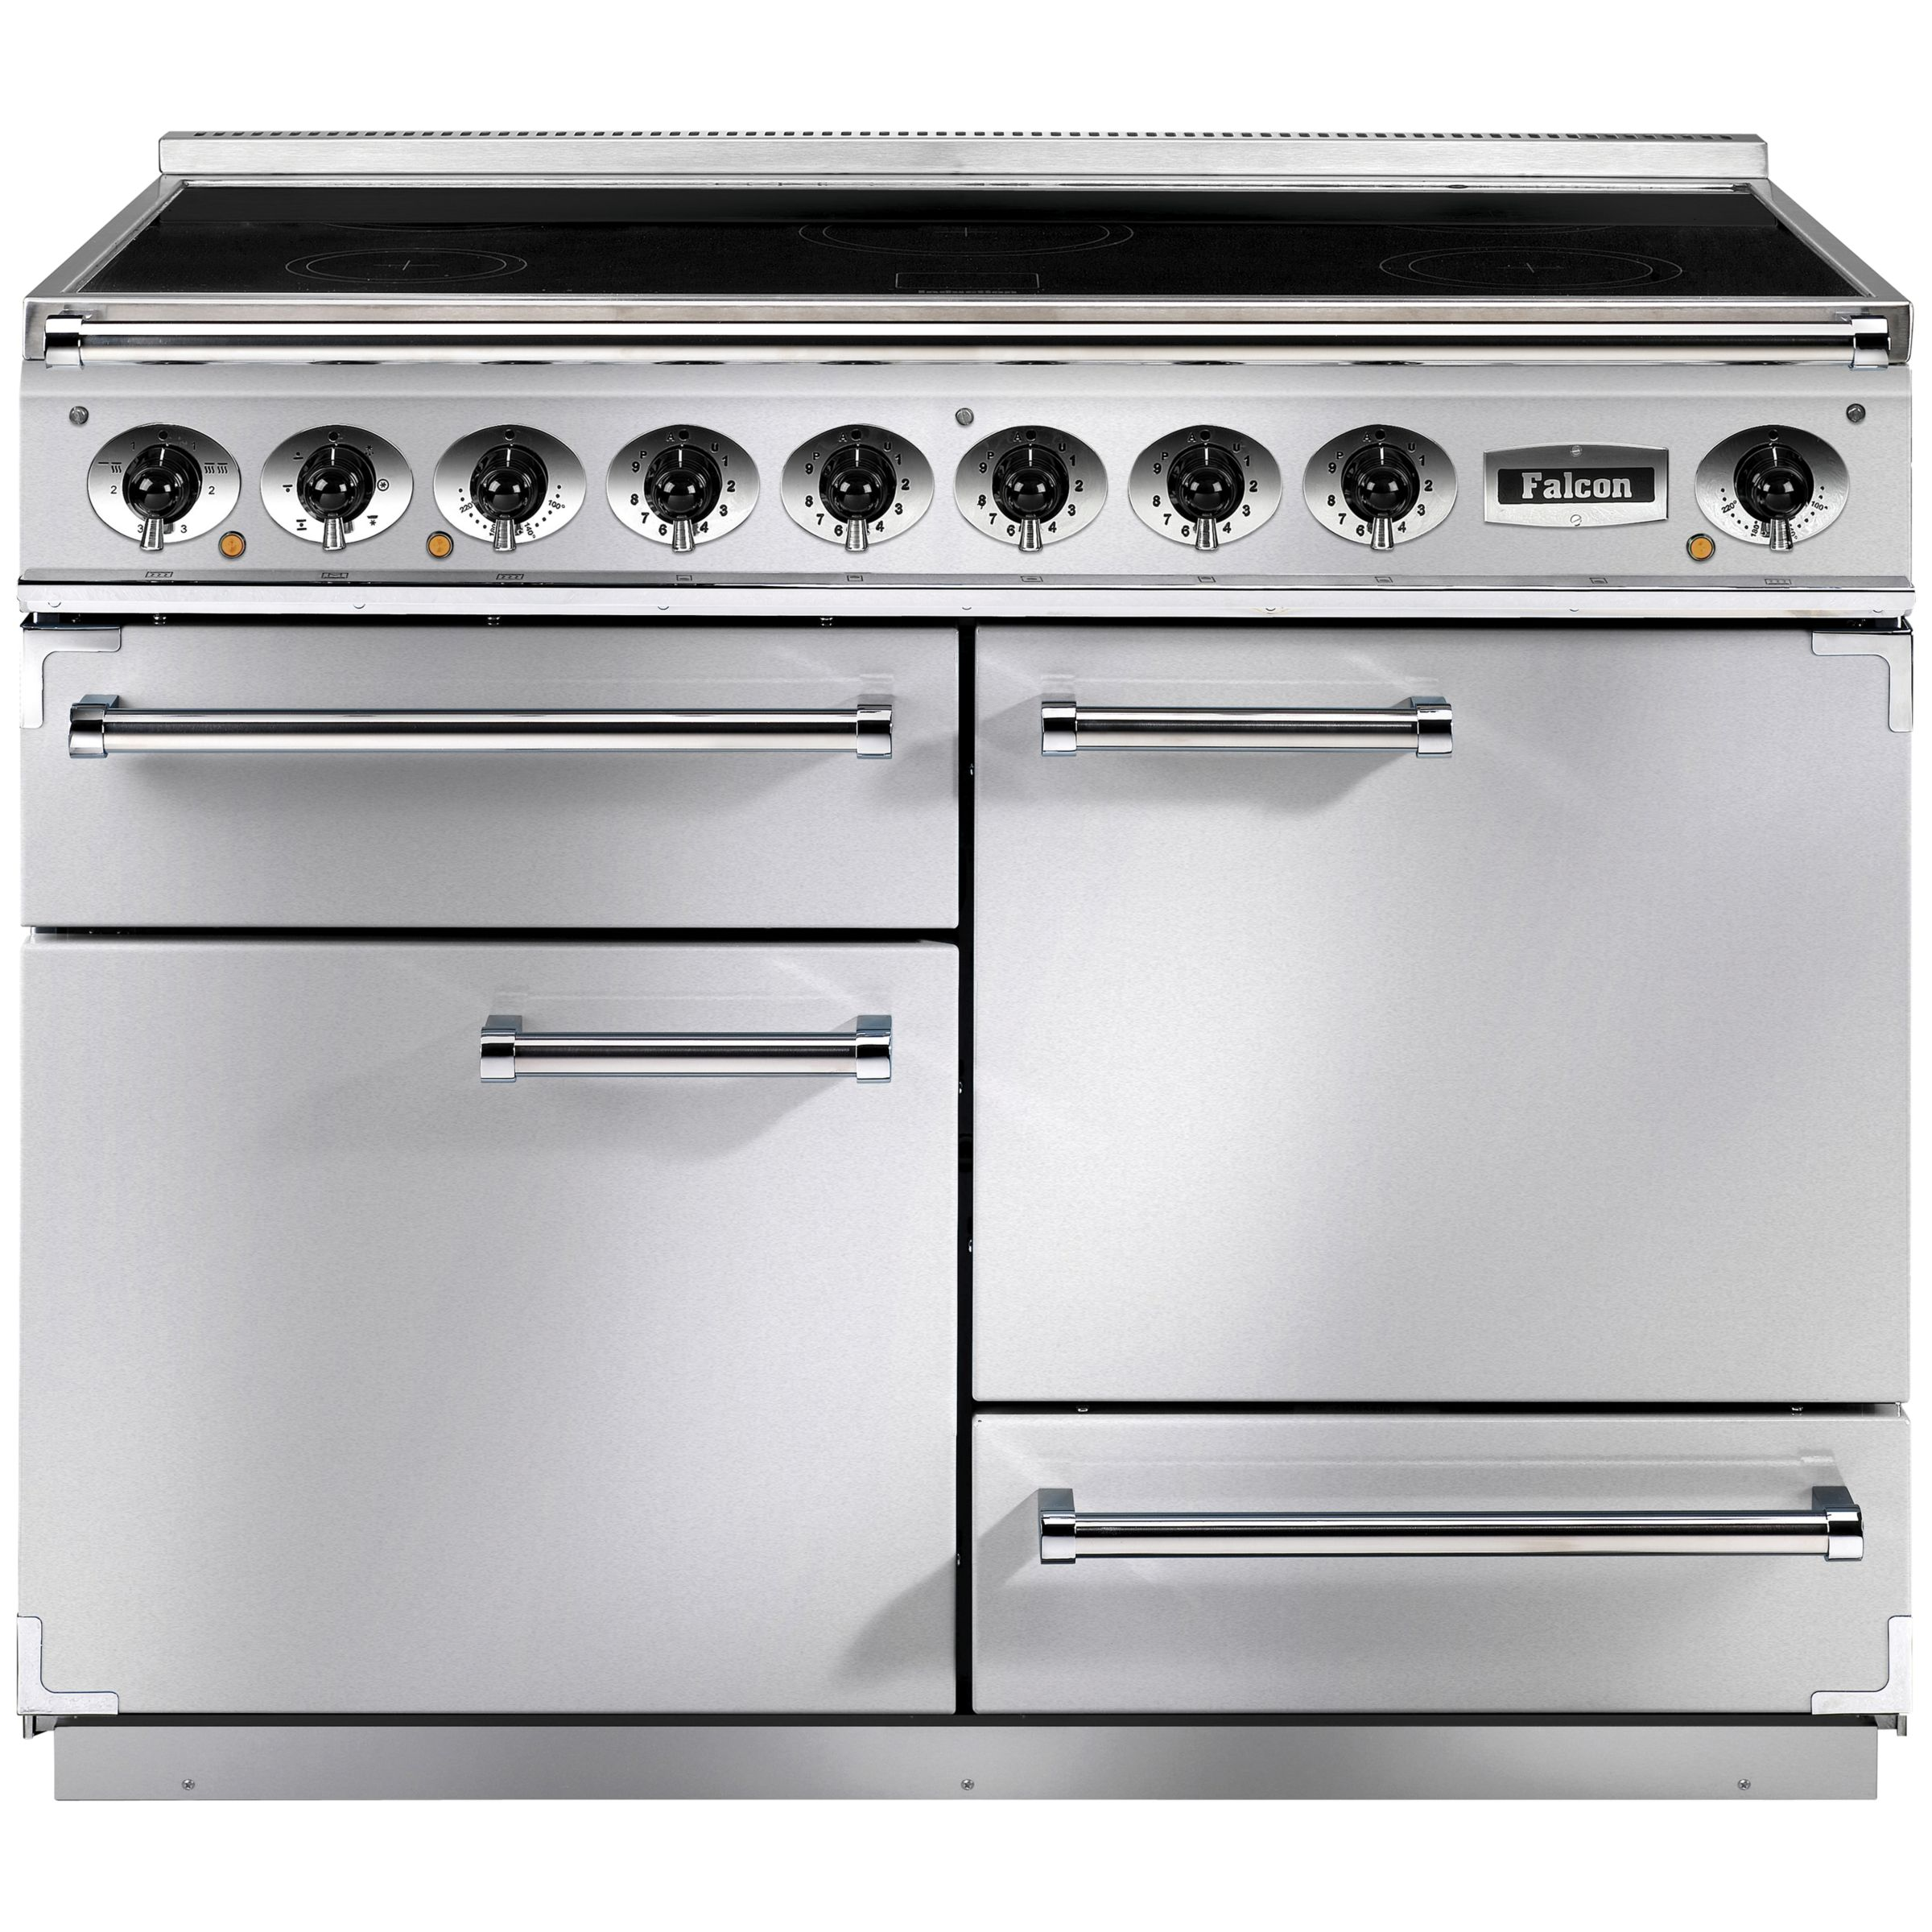 Falcon Falcon 1092 Deluxe Induction Hob Range Cooker, Stainless Steel